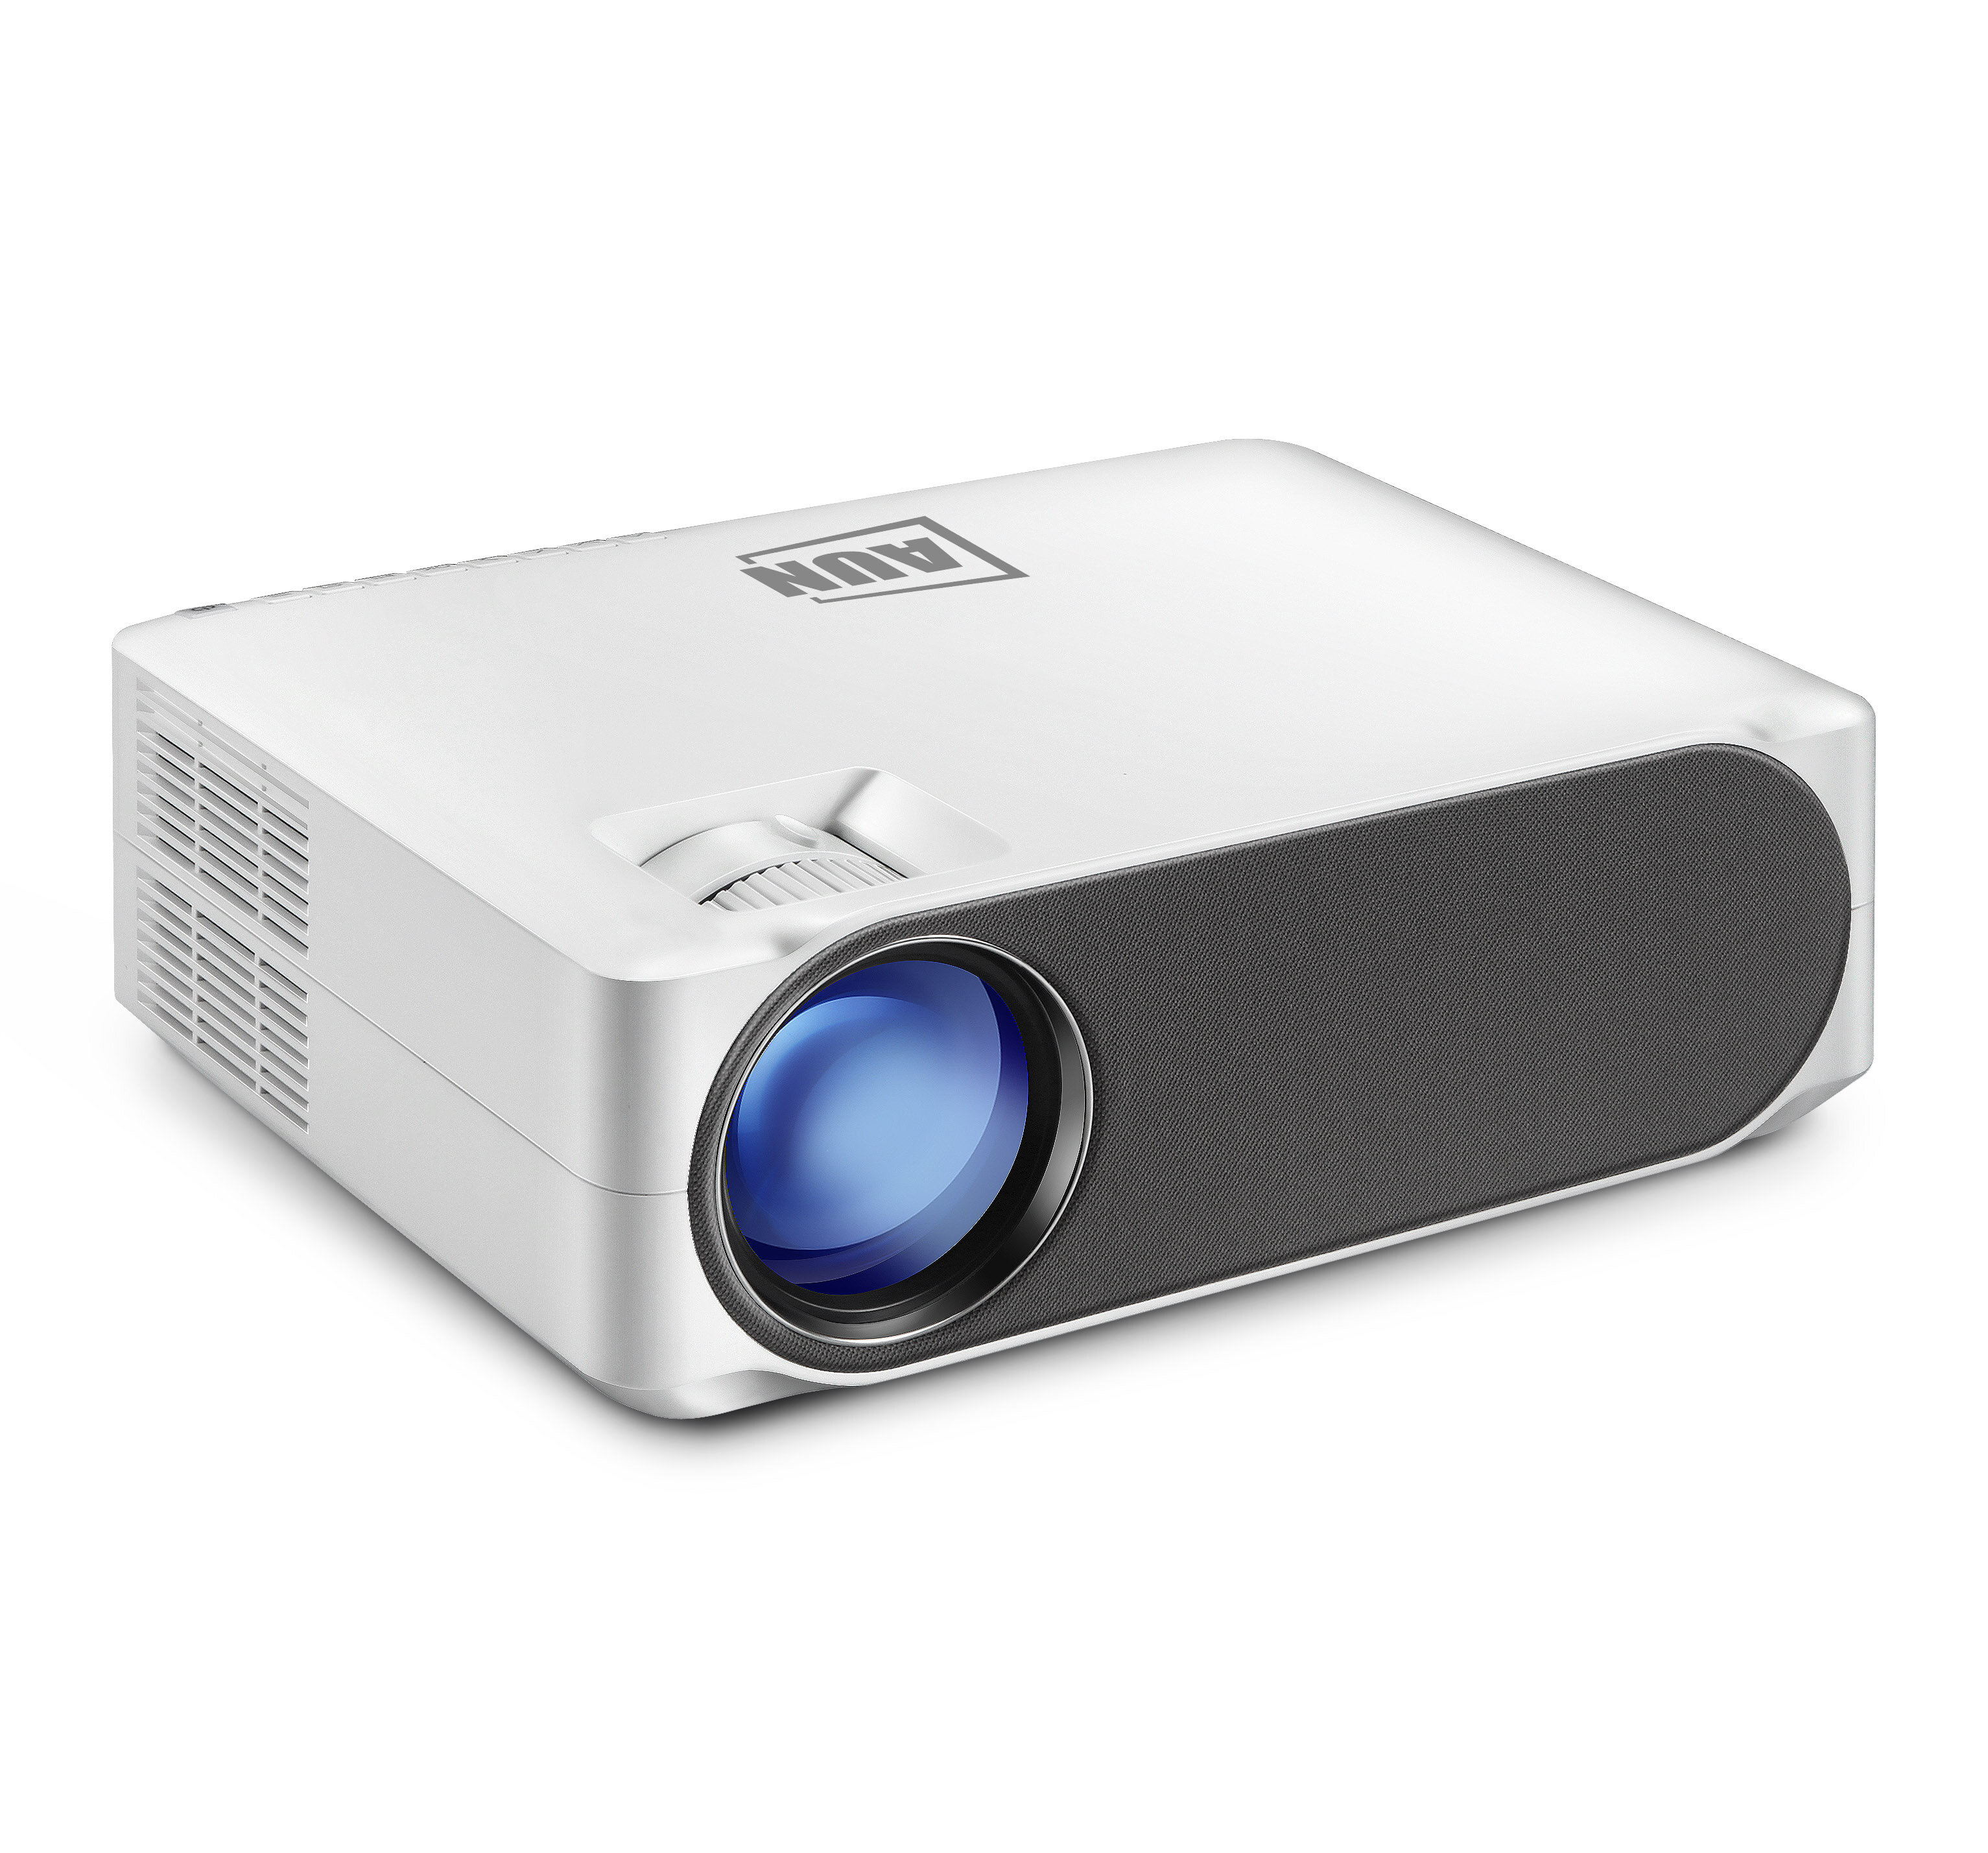 [Android Version] AUN AKEY6S Projector Full HD 1080P Resolution 6800 Lumens 1G+8G WIFI 2.4G Bluetooth 4.0 Built in Multi